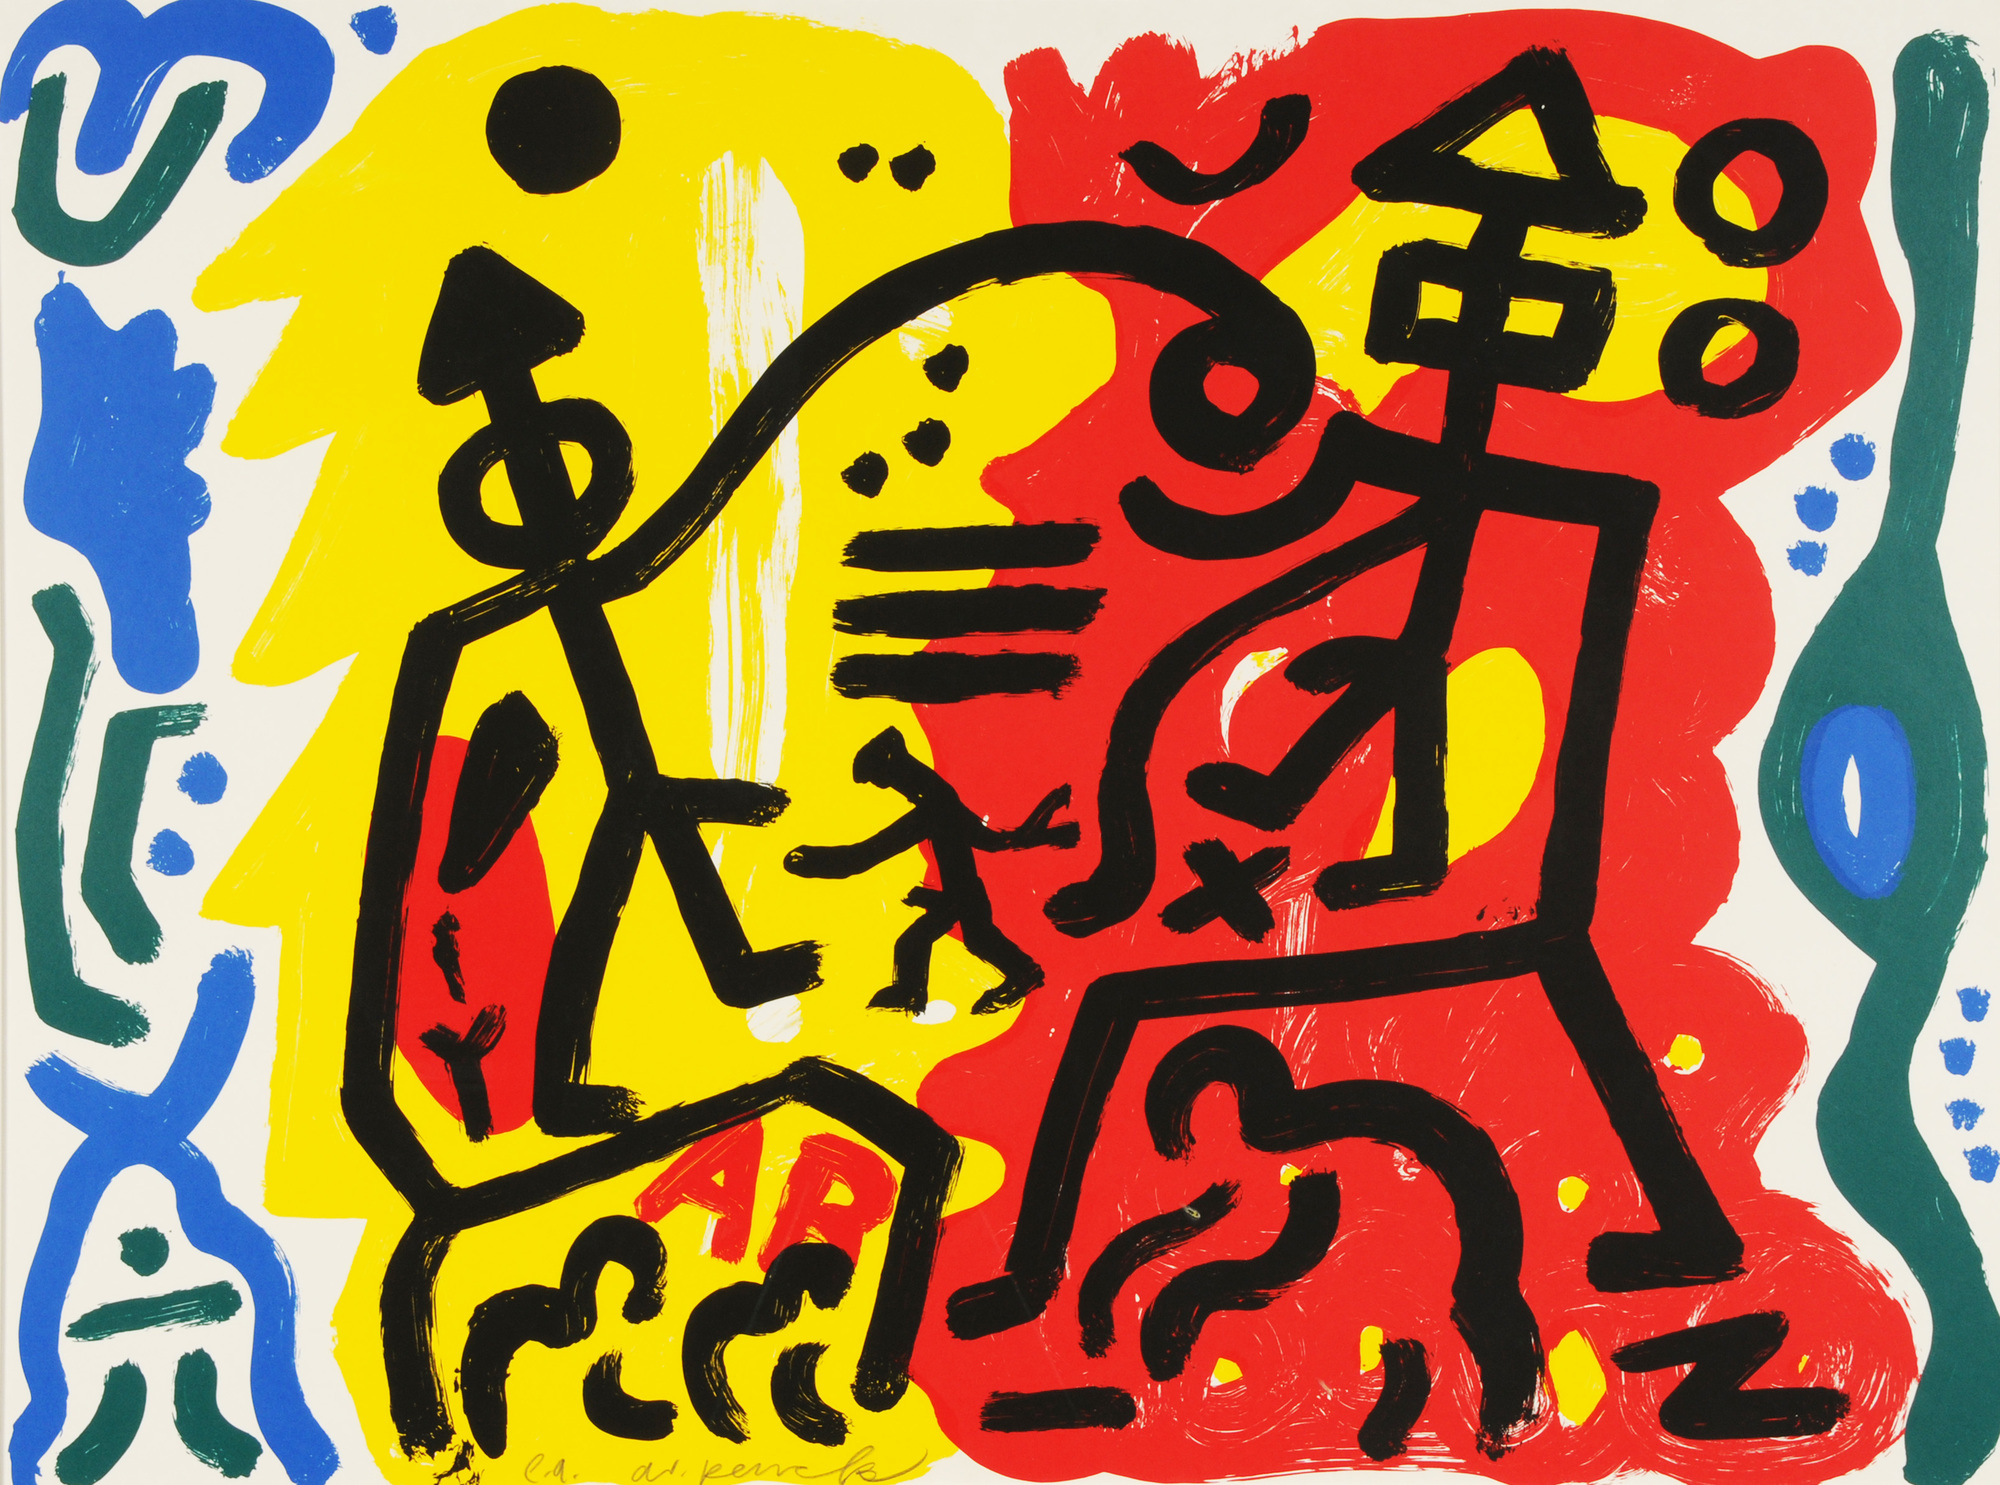 Penck A.R., Untitled